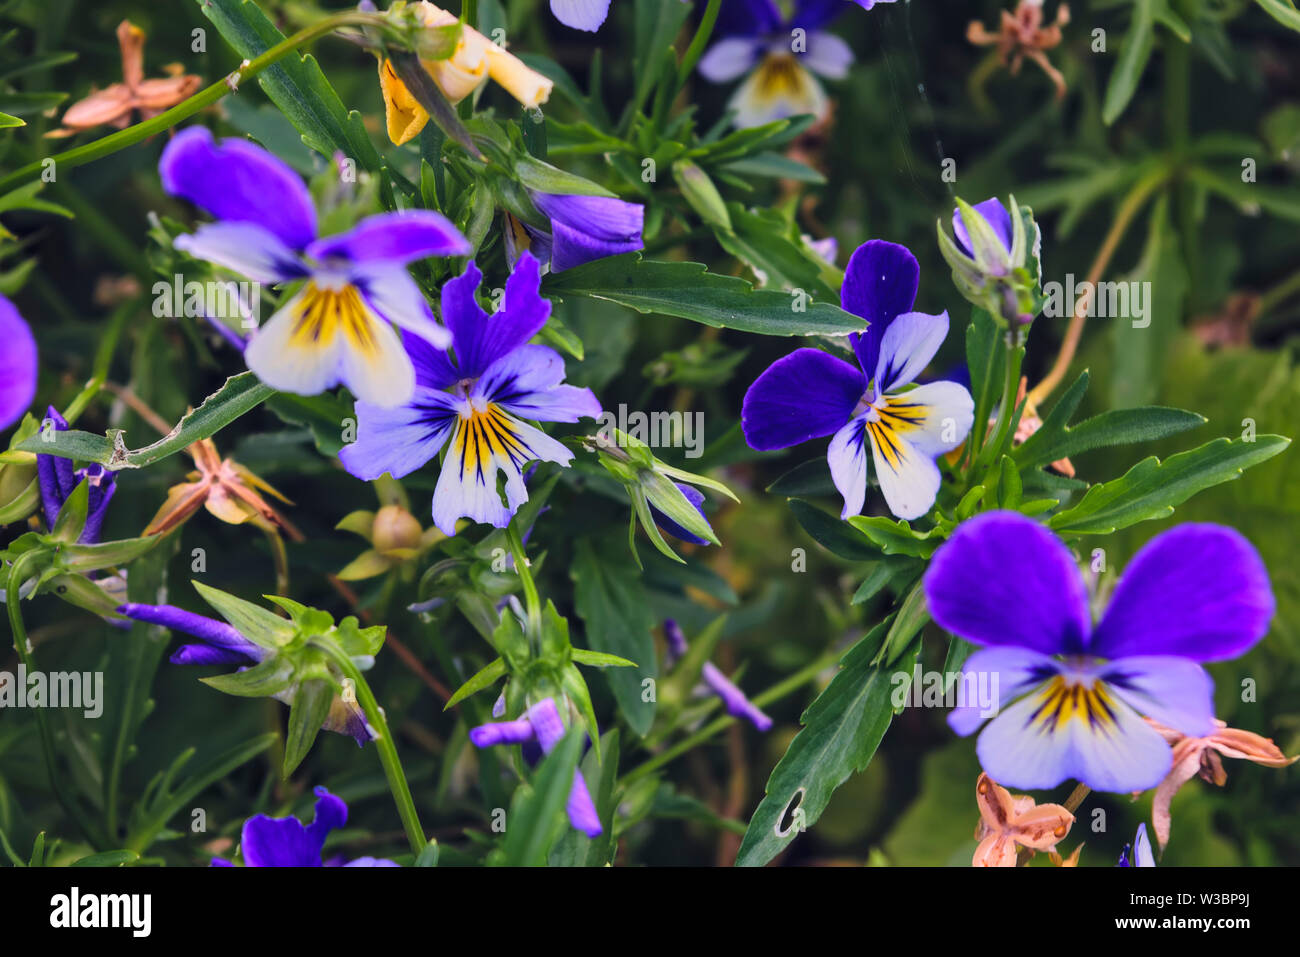 Summertime floral card with bright garden of tricolor viola flowers. - Stock Image